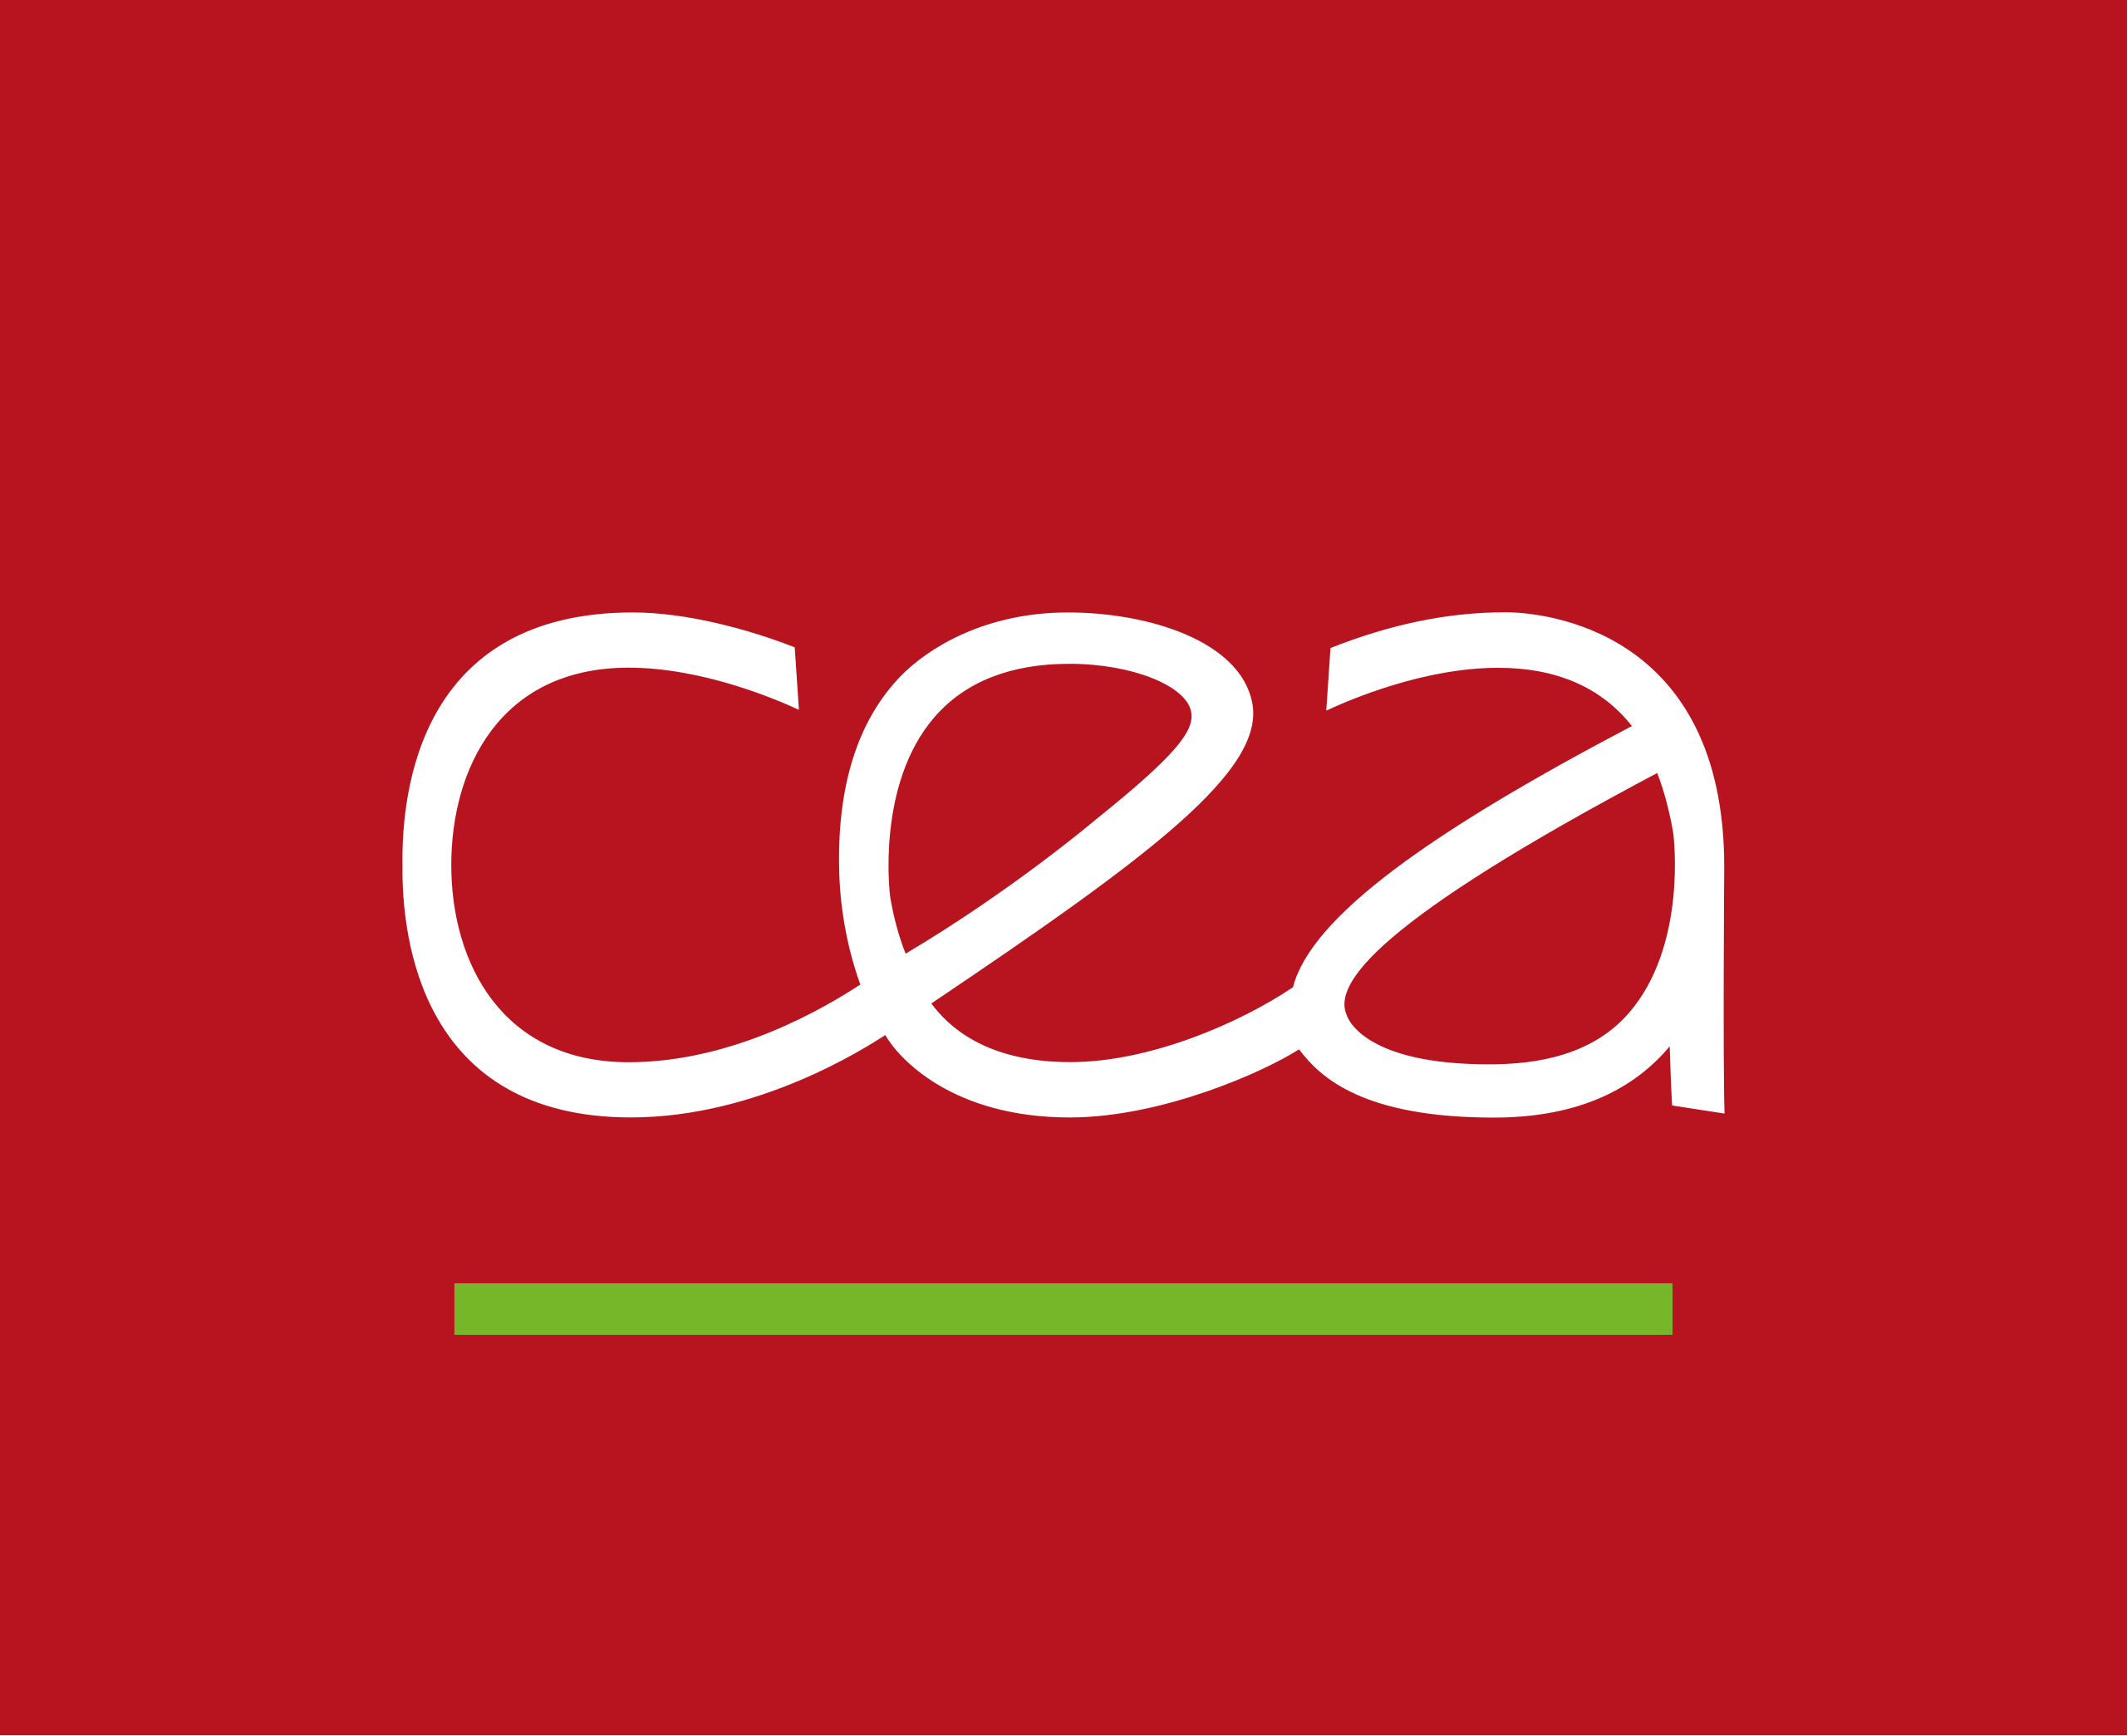 logo_cea.png